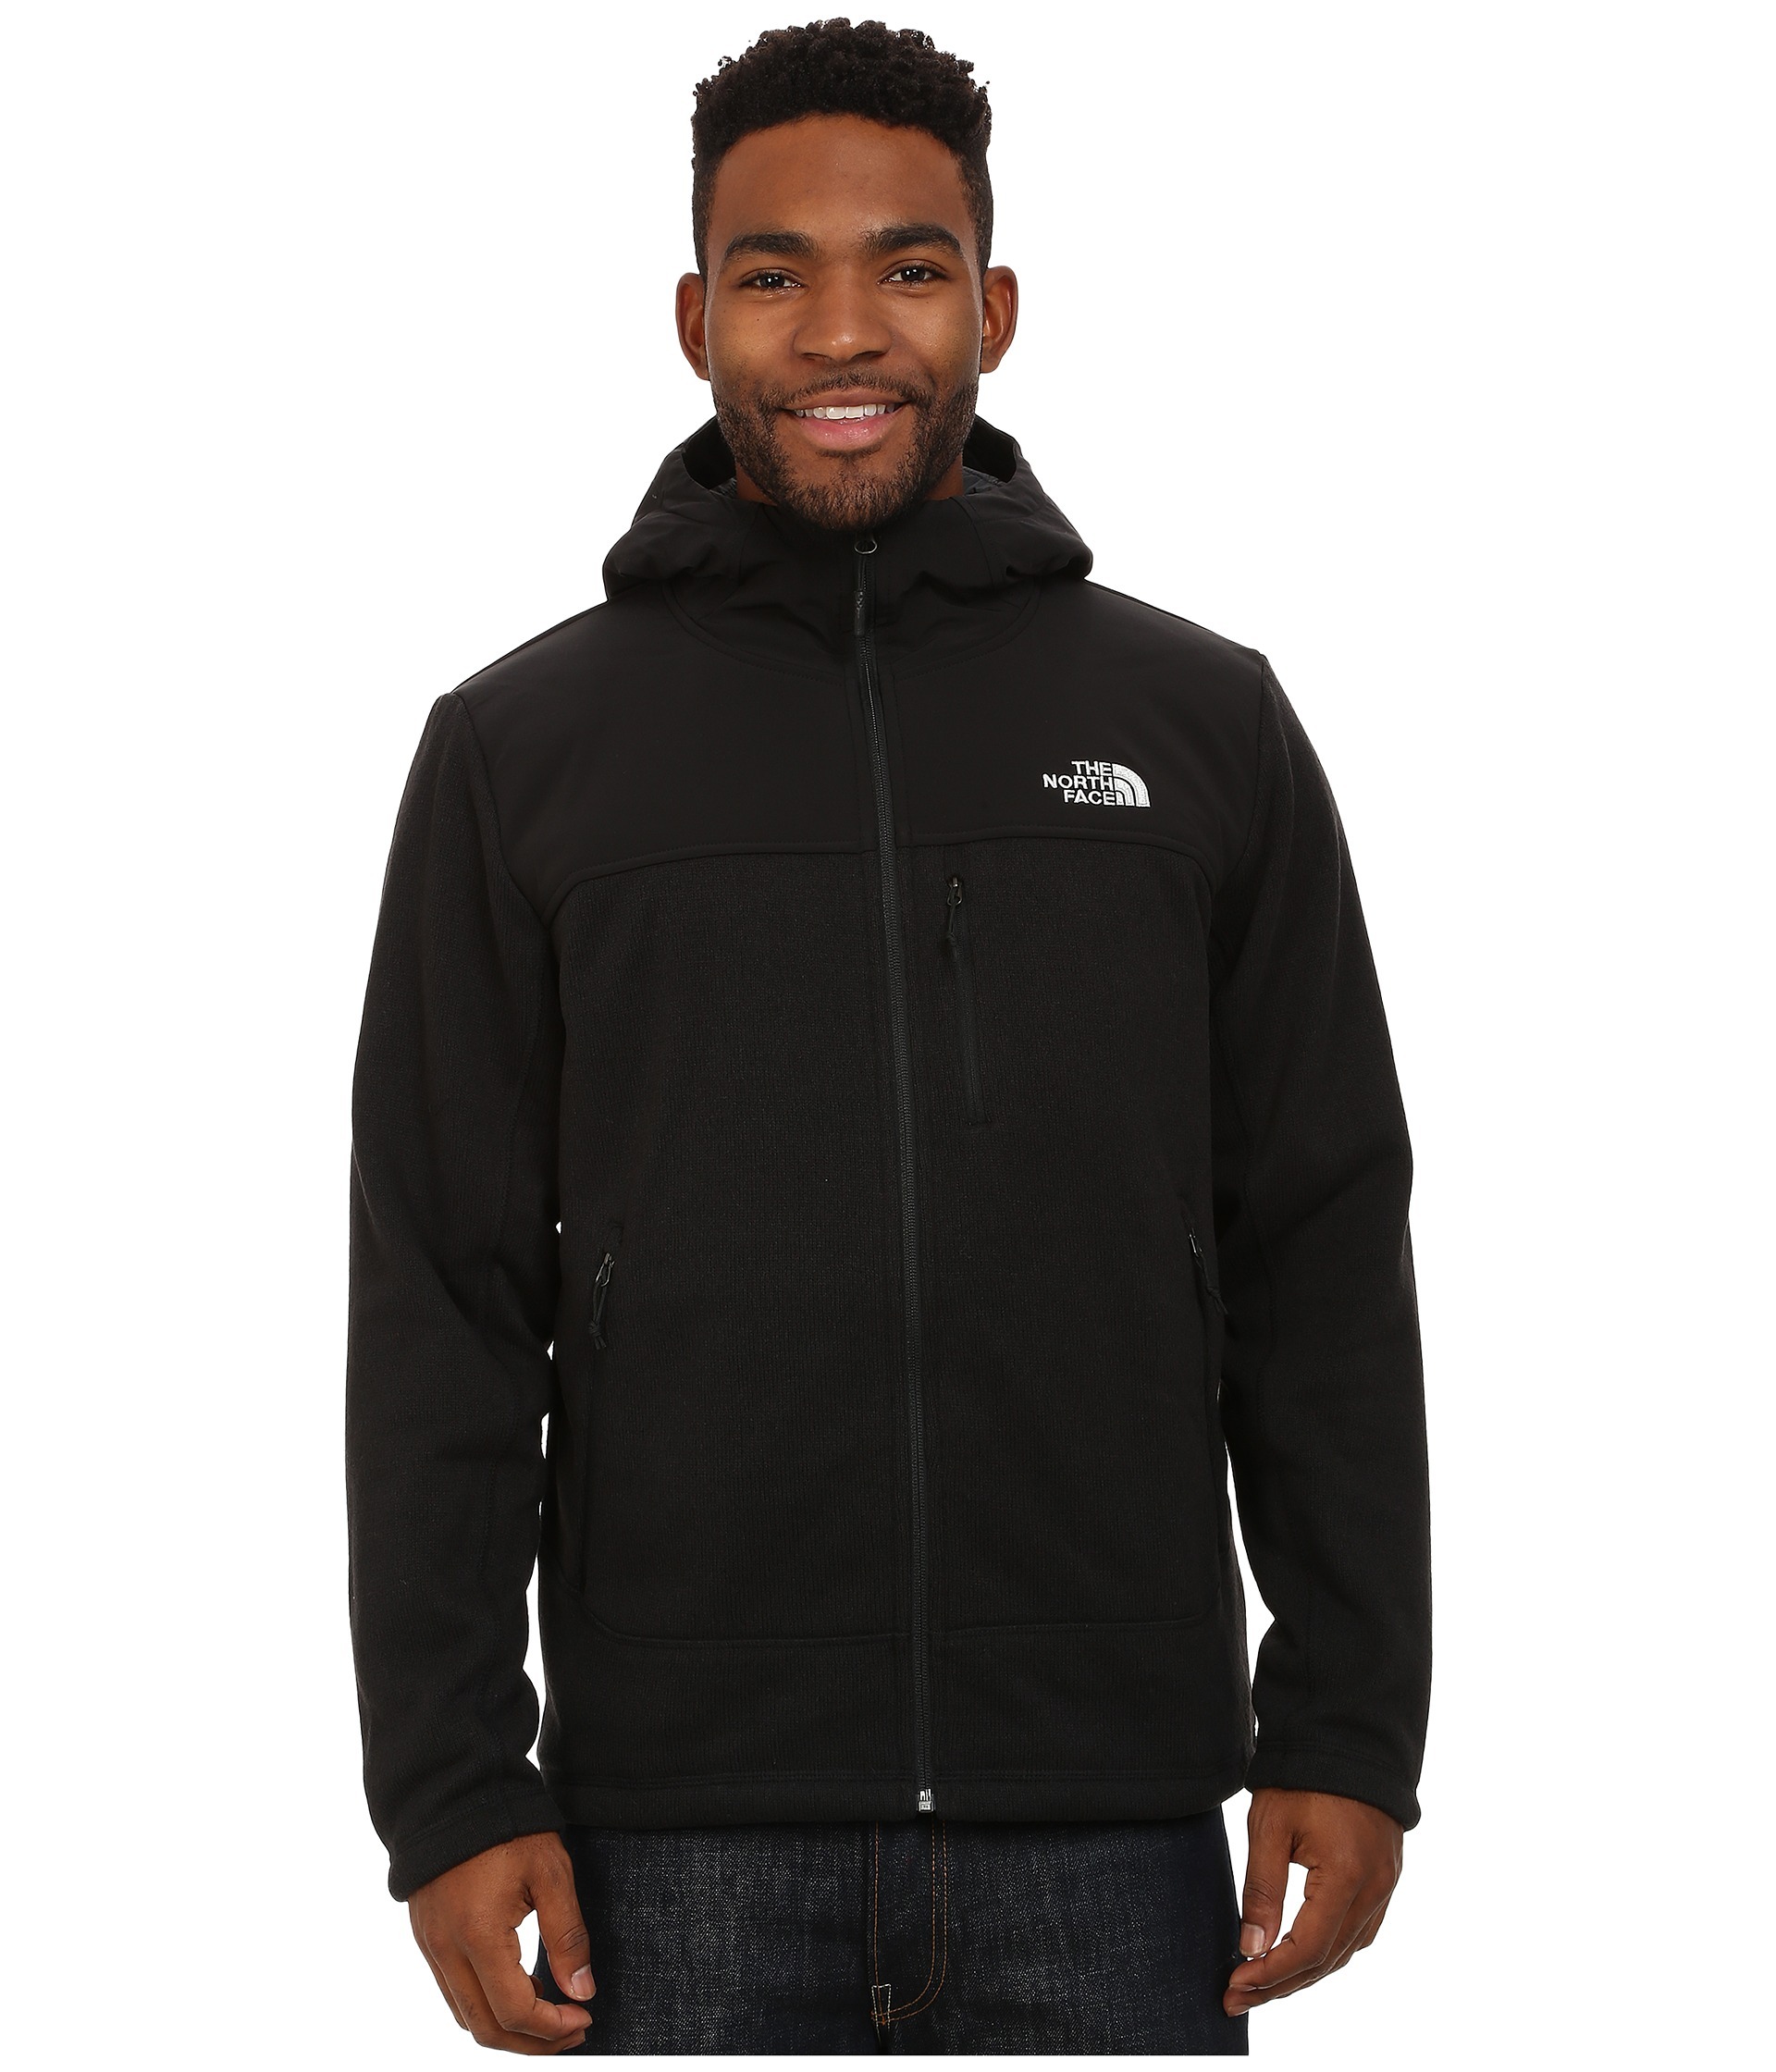 df8d96c80617 the north face gordon lyons hoodie - Marwood VeneerMarwood Veneer